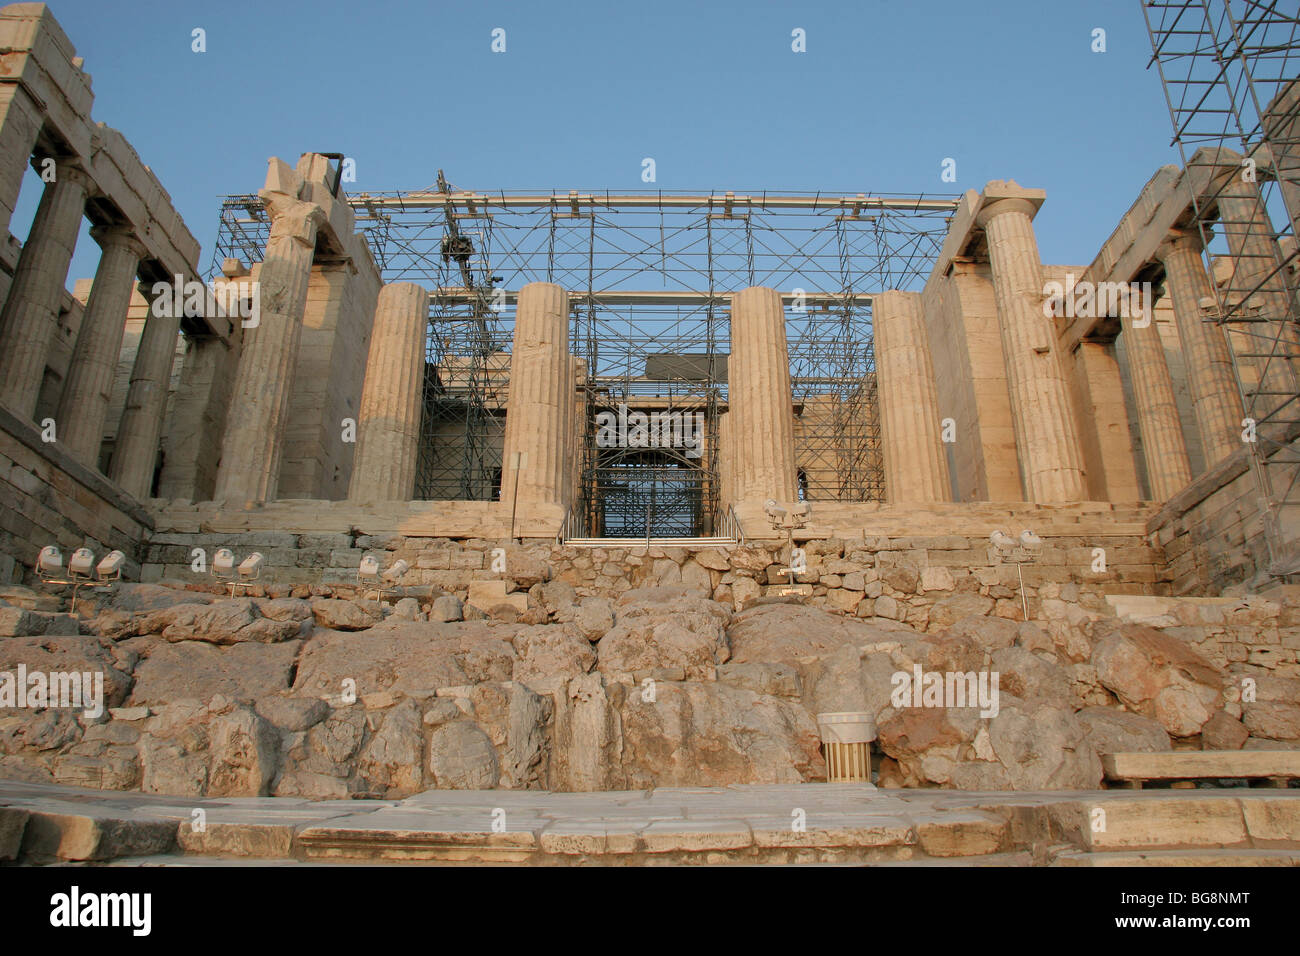 The Propylaea.  Acropolis. Athens. Greece. Stock Photo